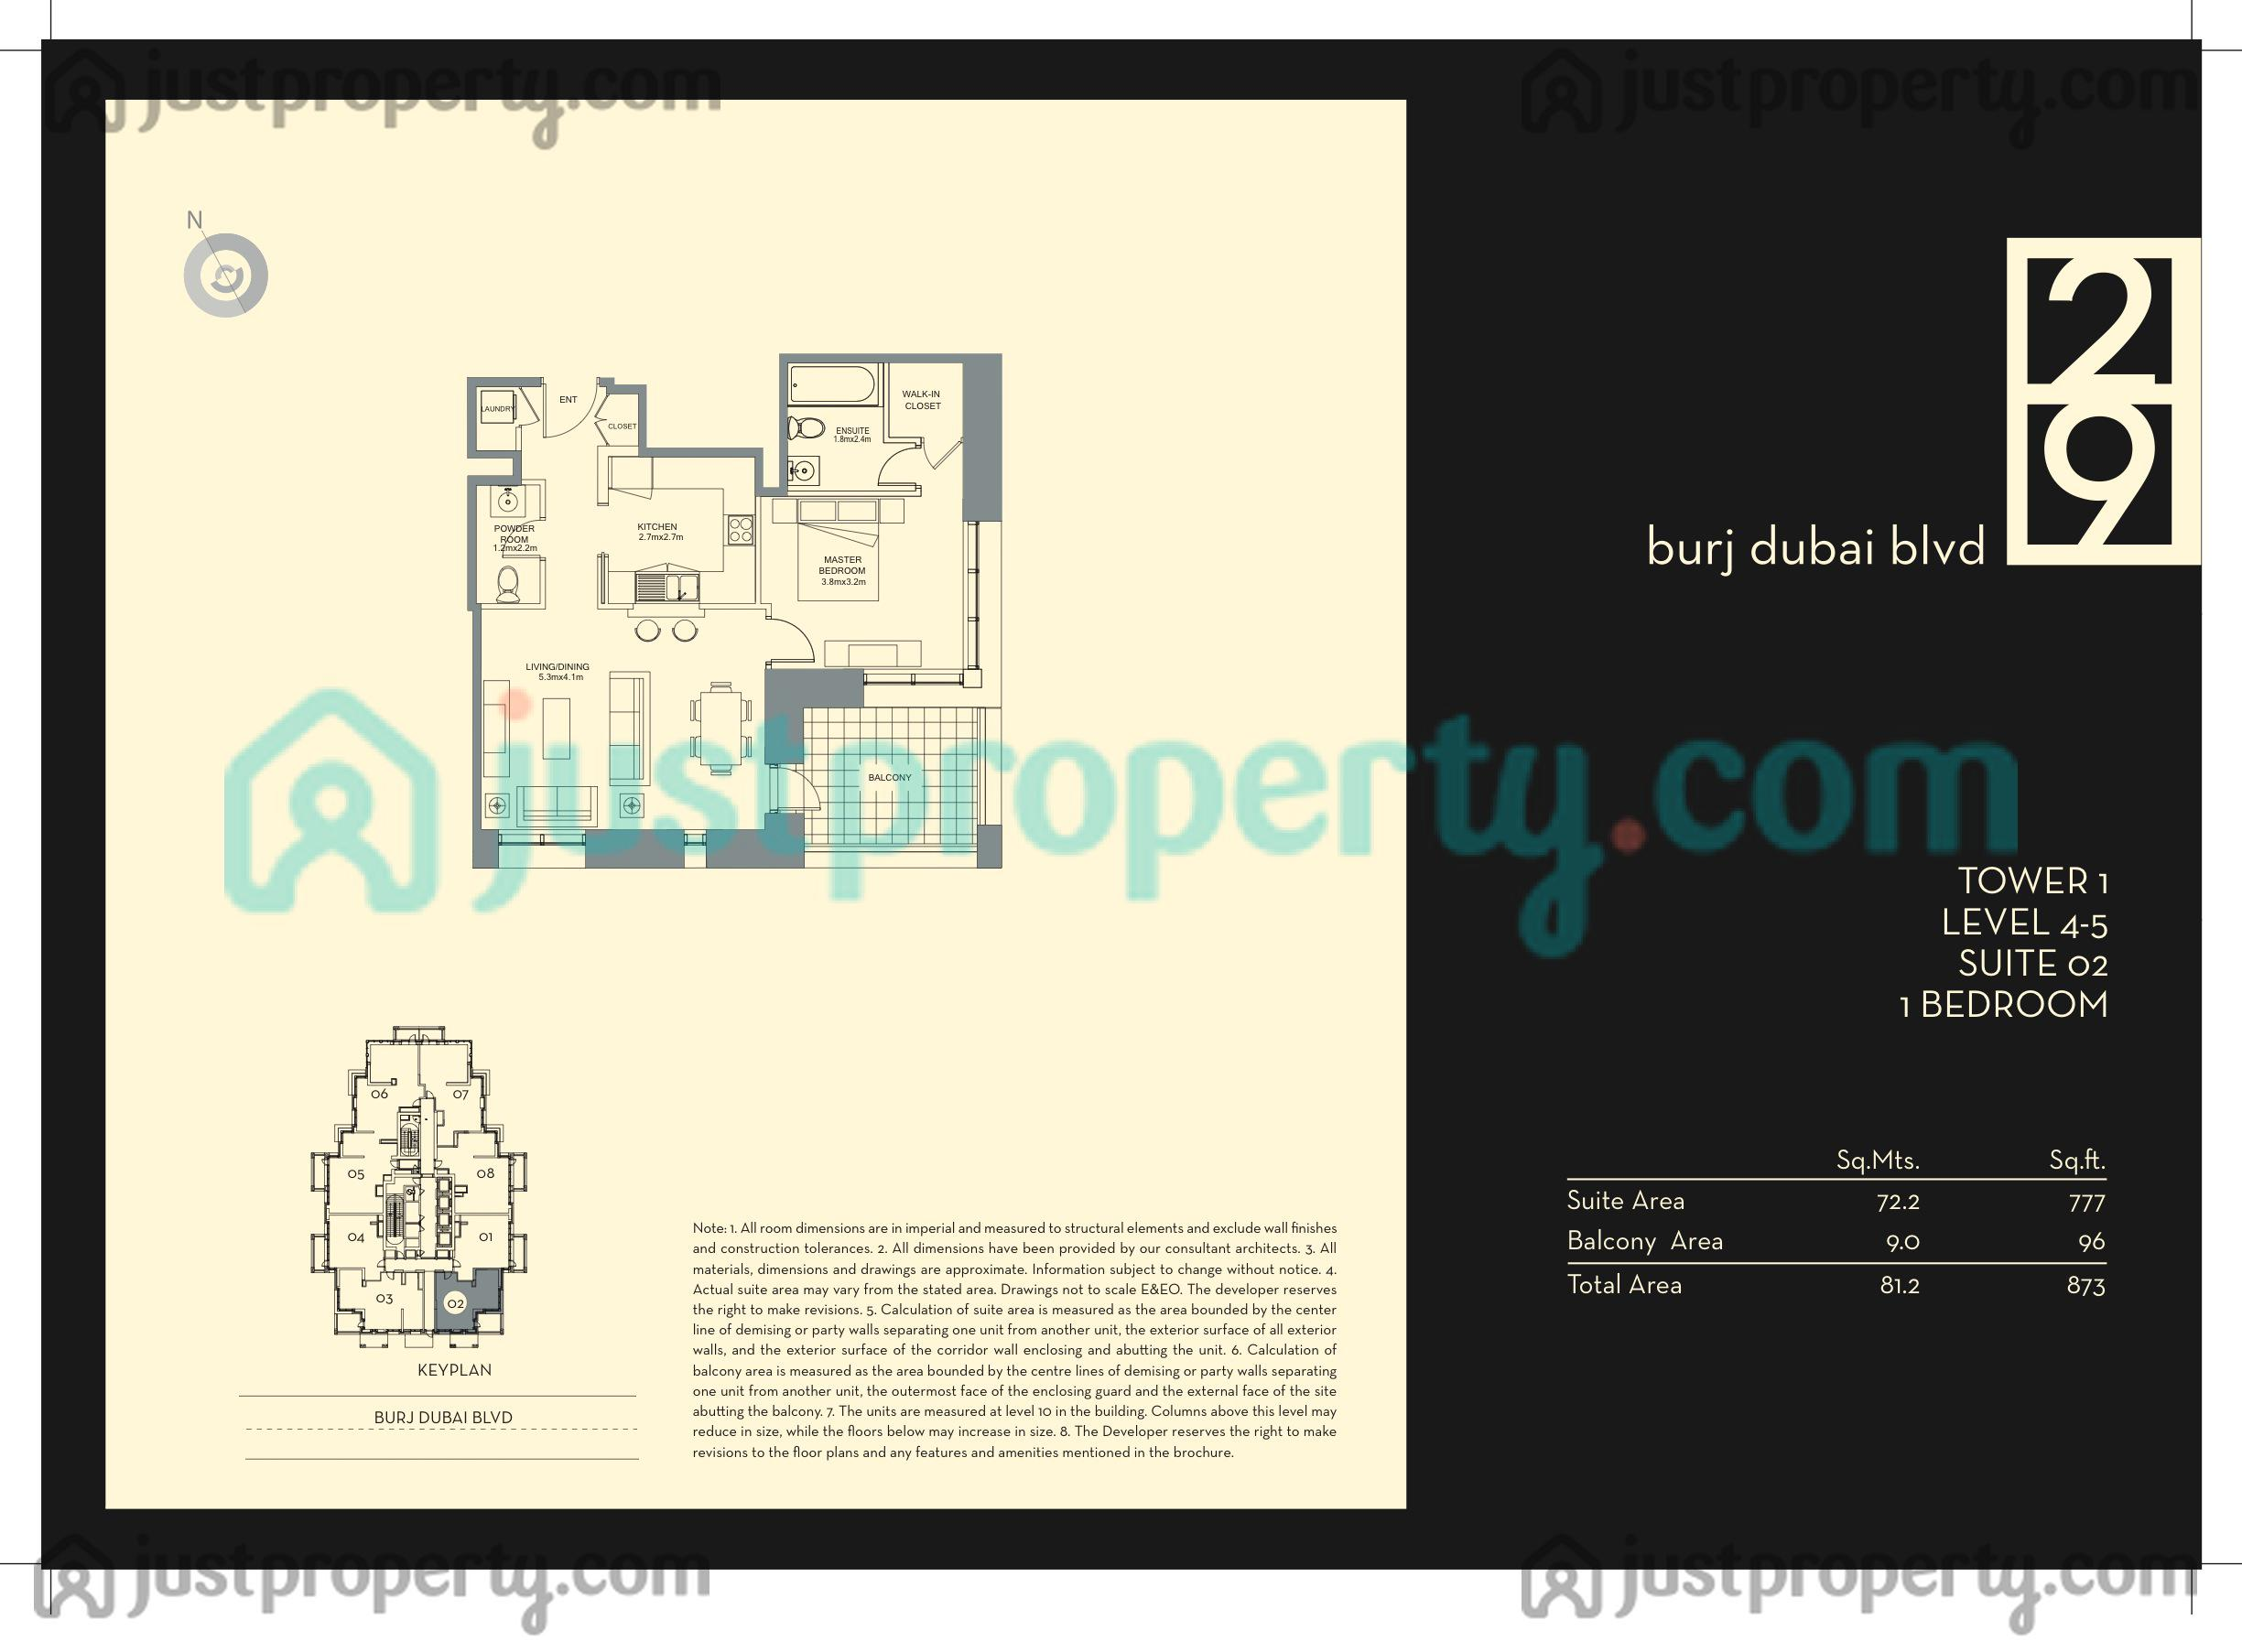 Nice 5 29 Plan #9: Floor Plans For 29 Boulevard Tower 1